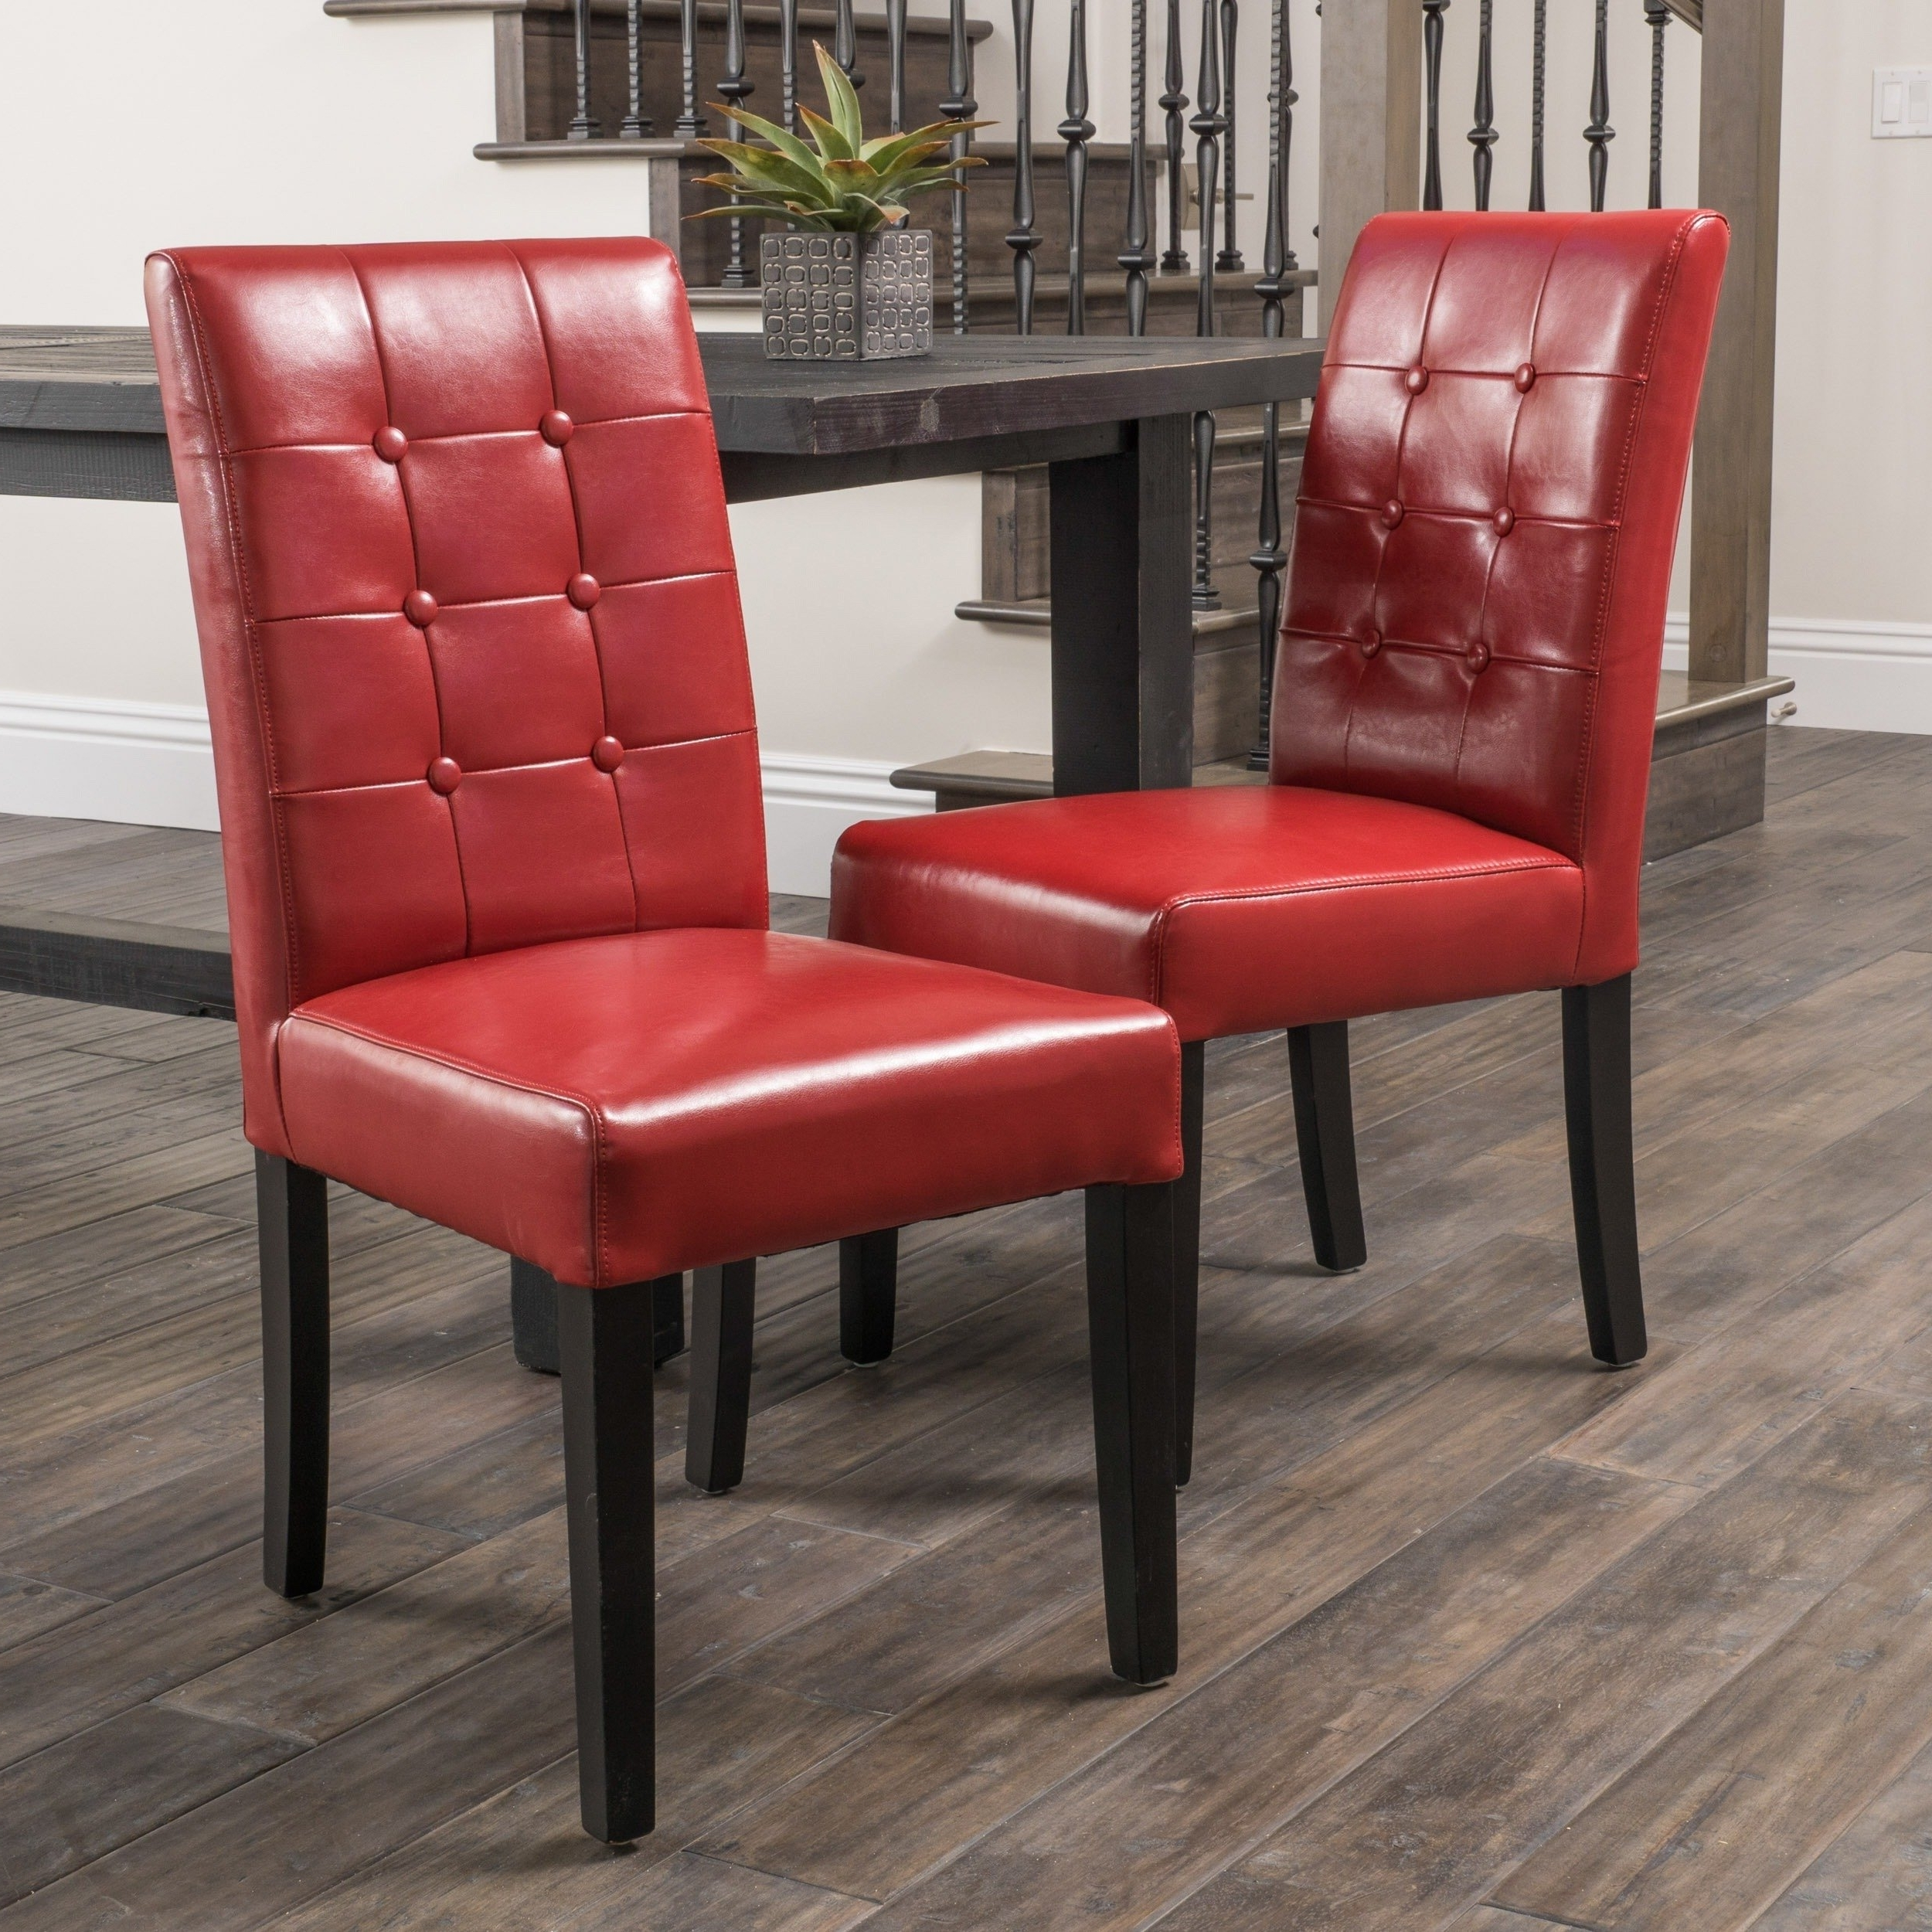 Latest Shop Roland Red Bonded Leather Dining Chairschristopher Knight With Regard To Red Leather Dining Chairs (View 18 of 25)